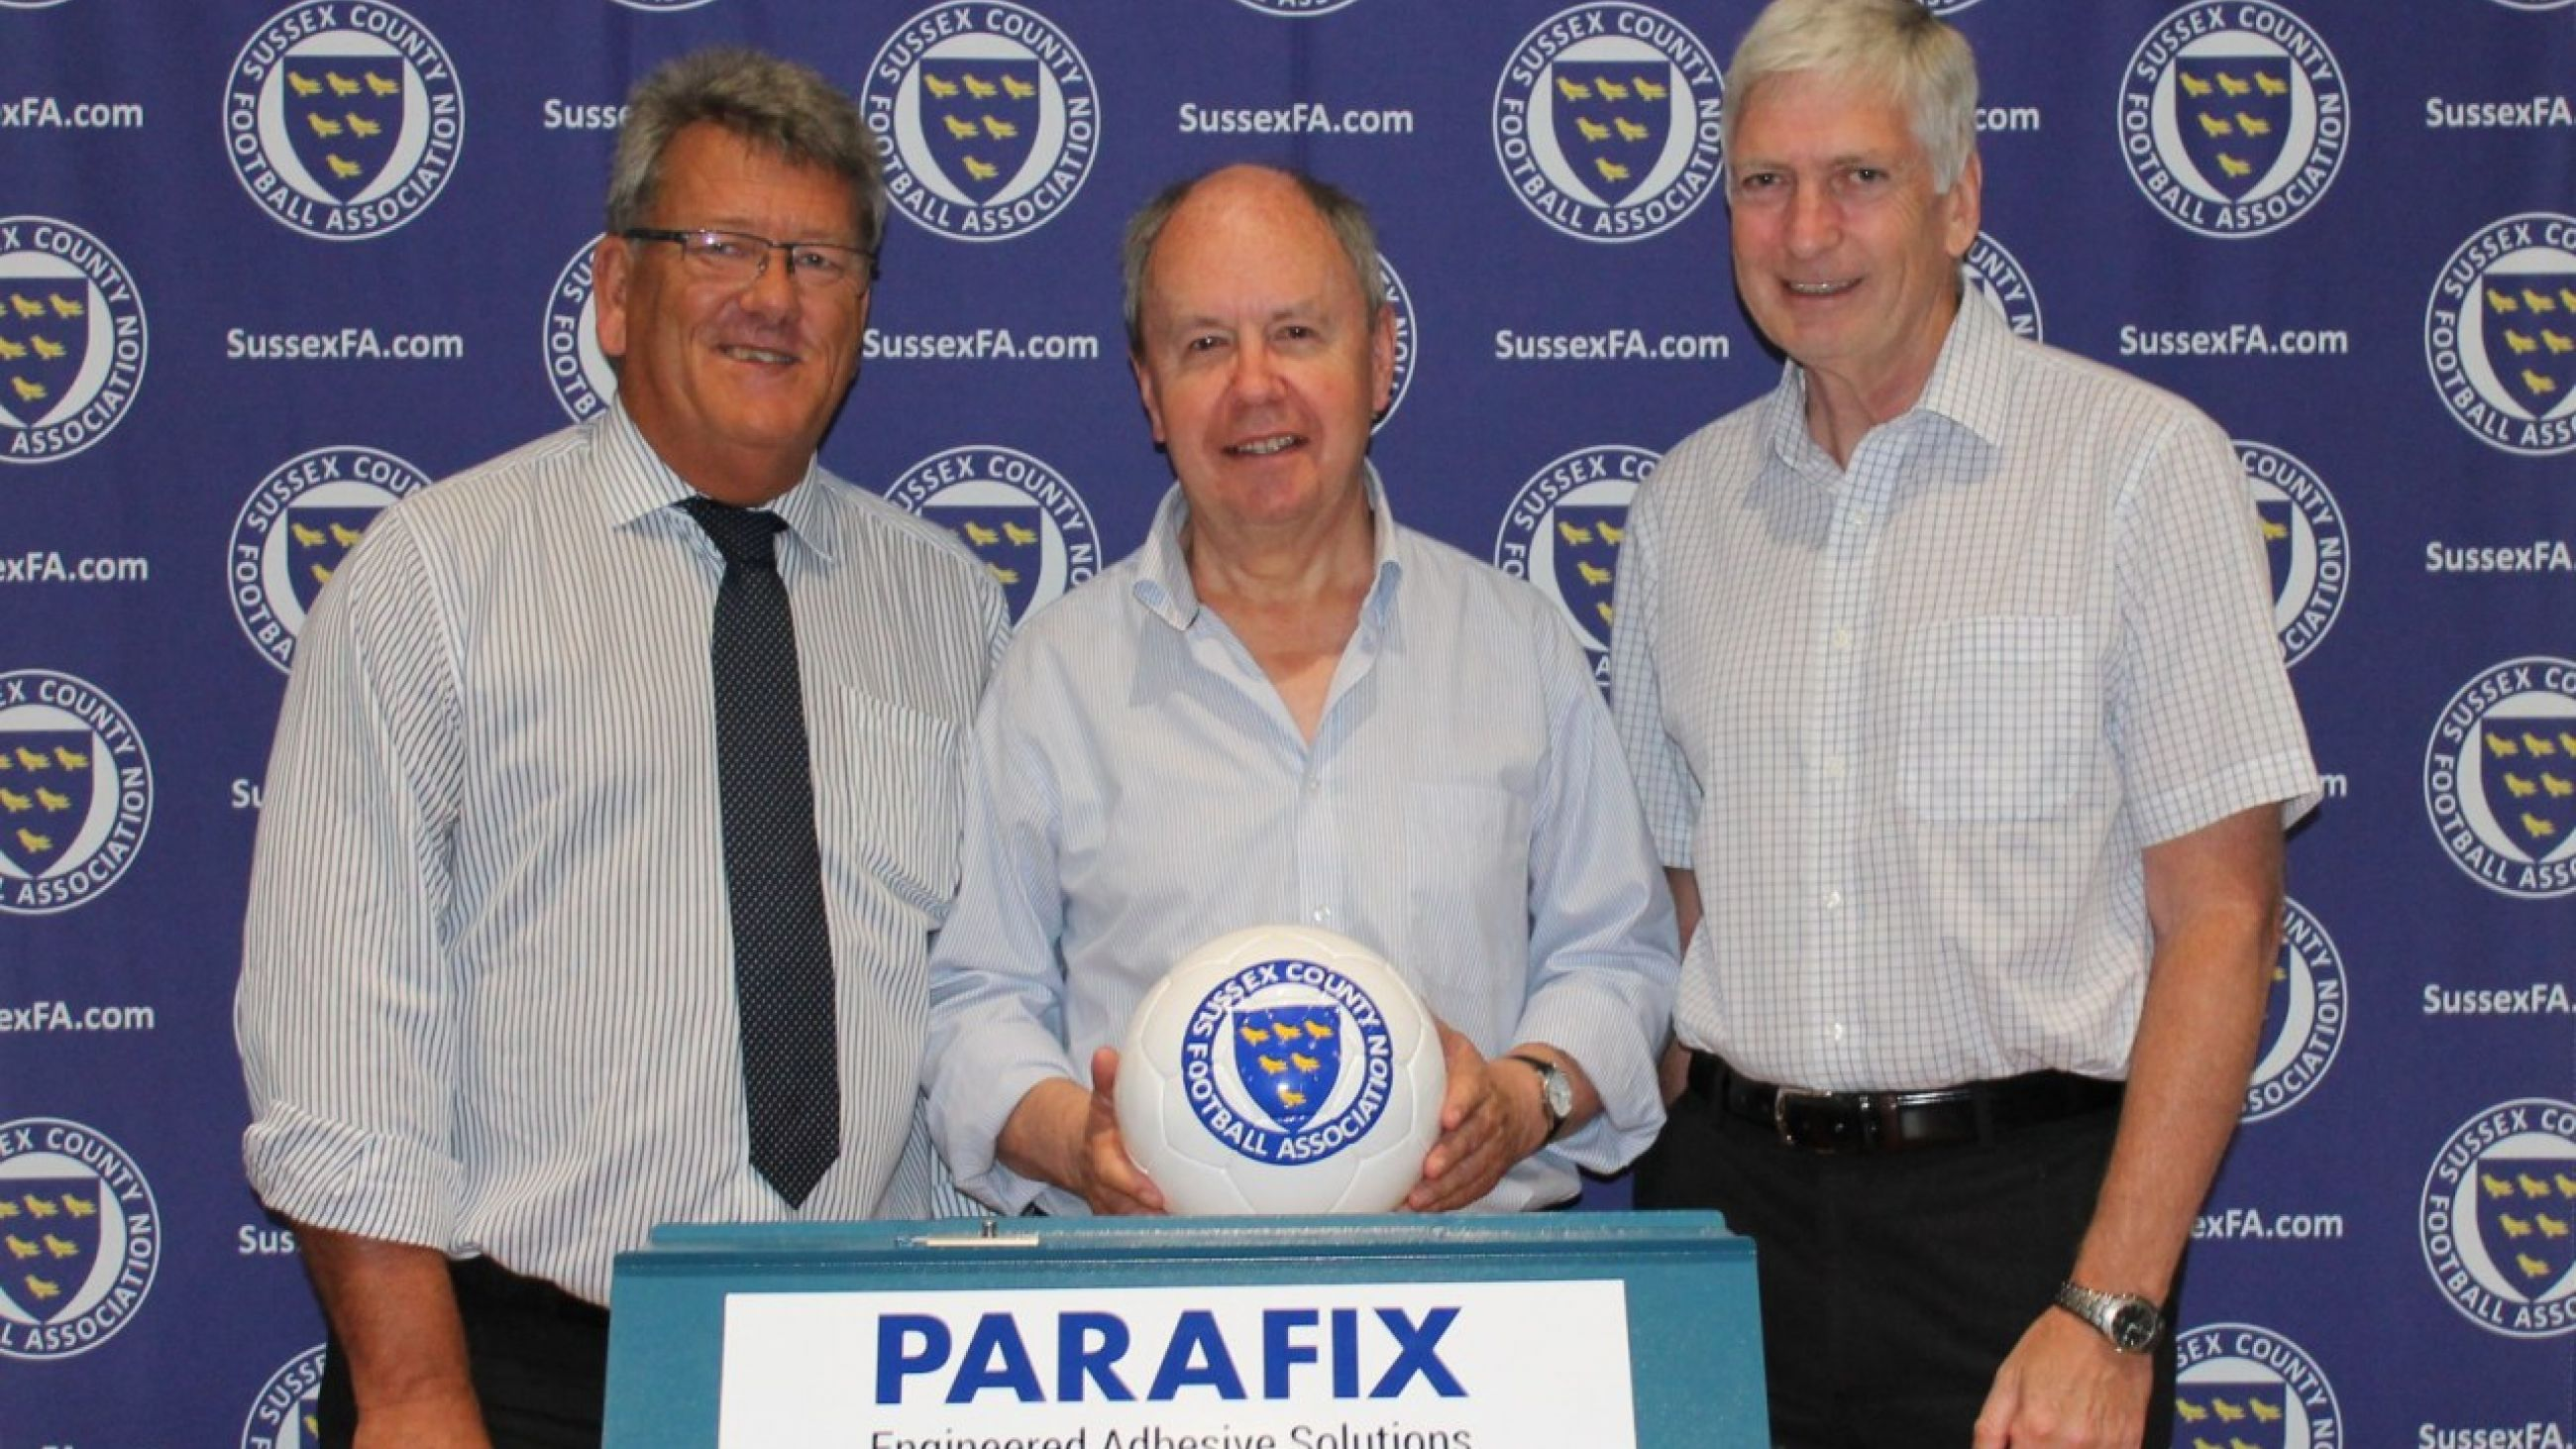 Parafix Sussex Senior Challenge Cup 1st Round Draw 2017